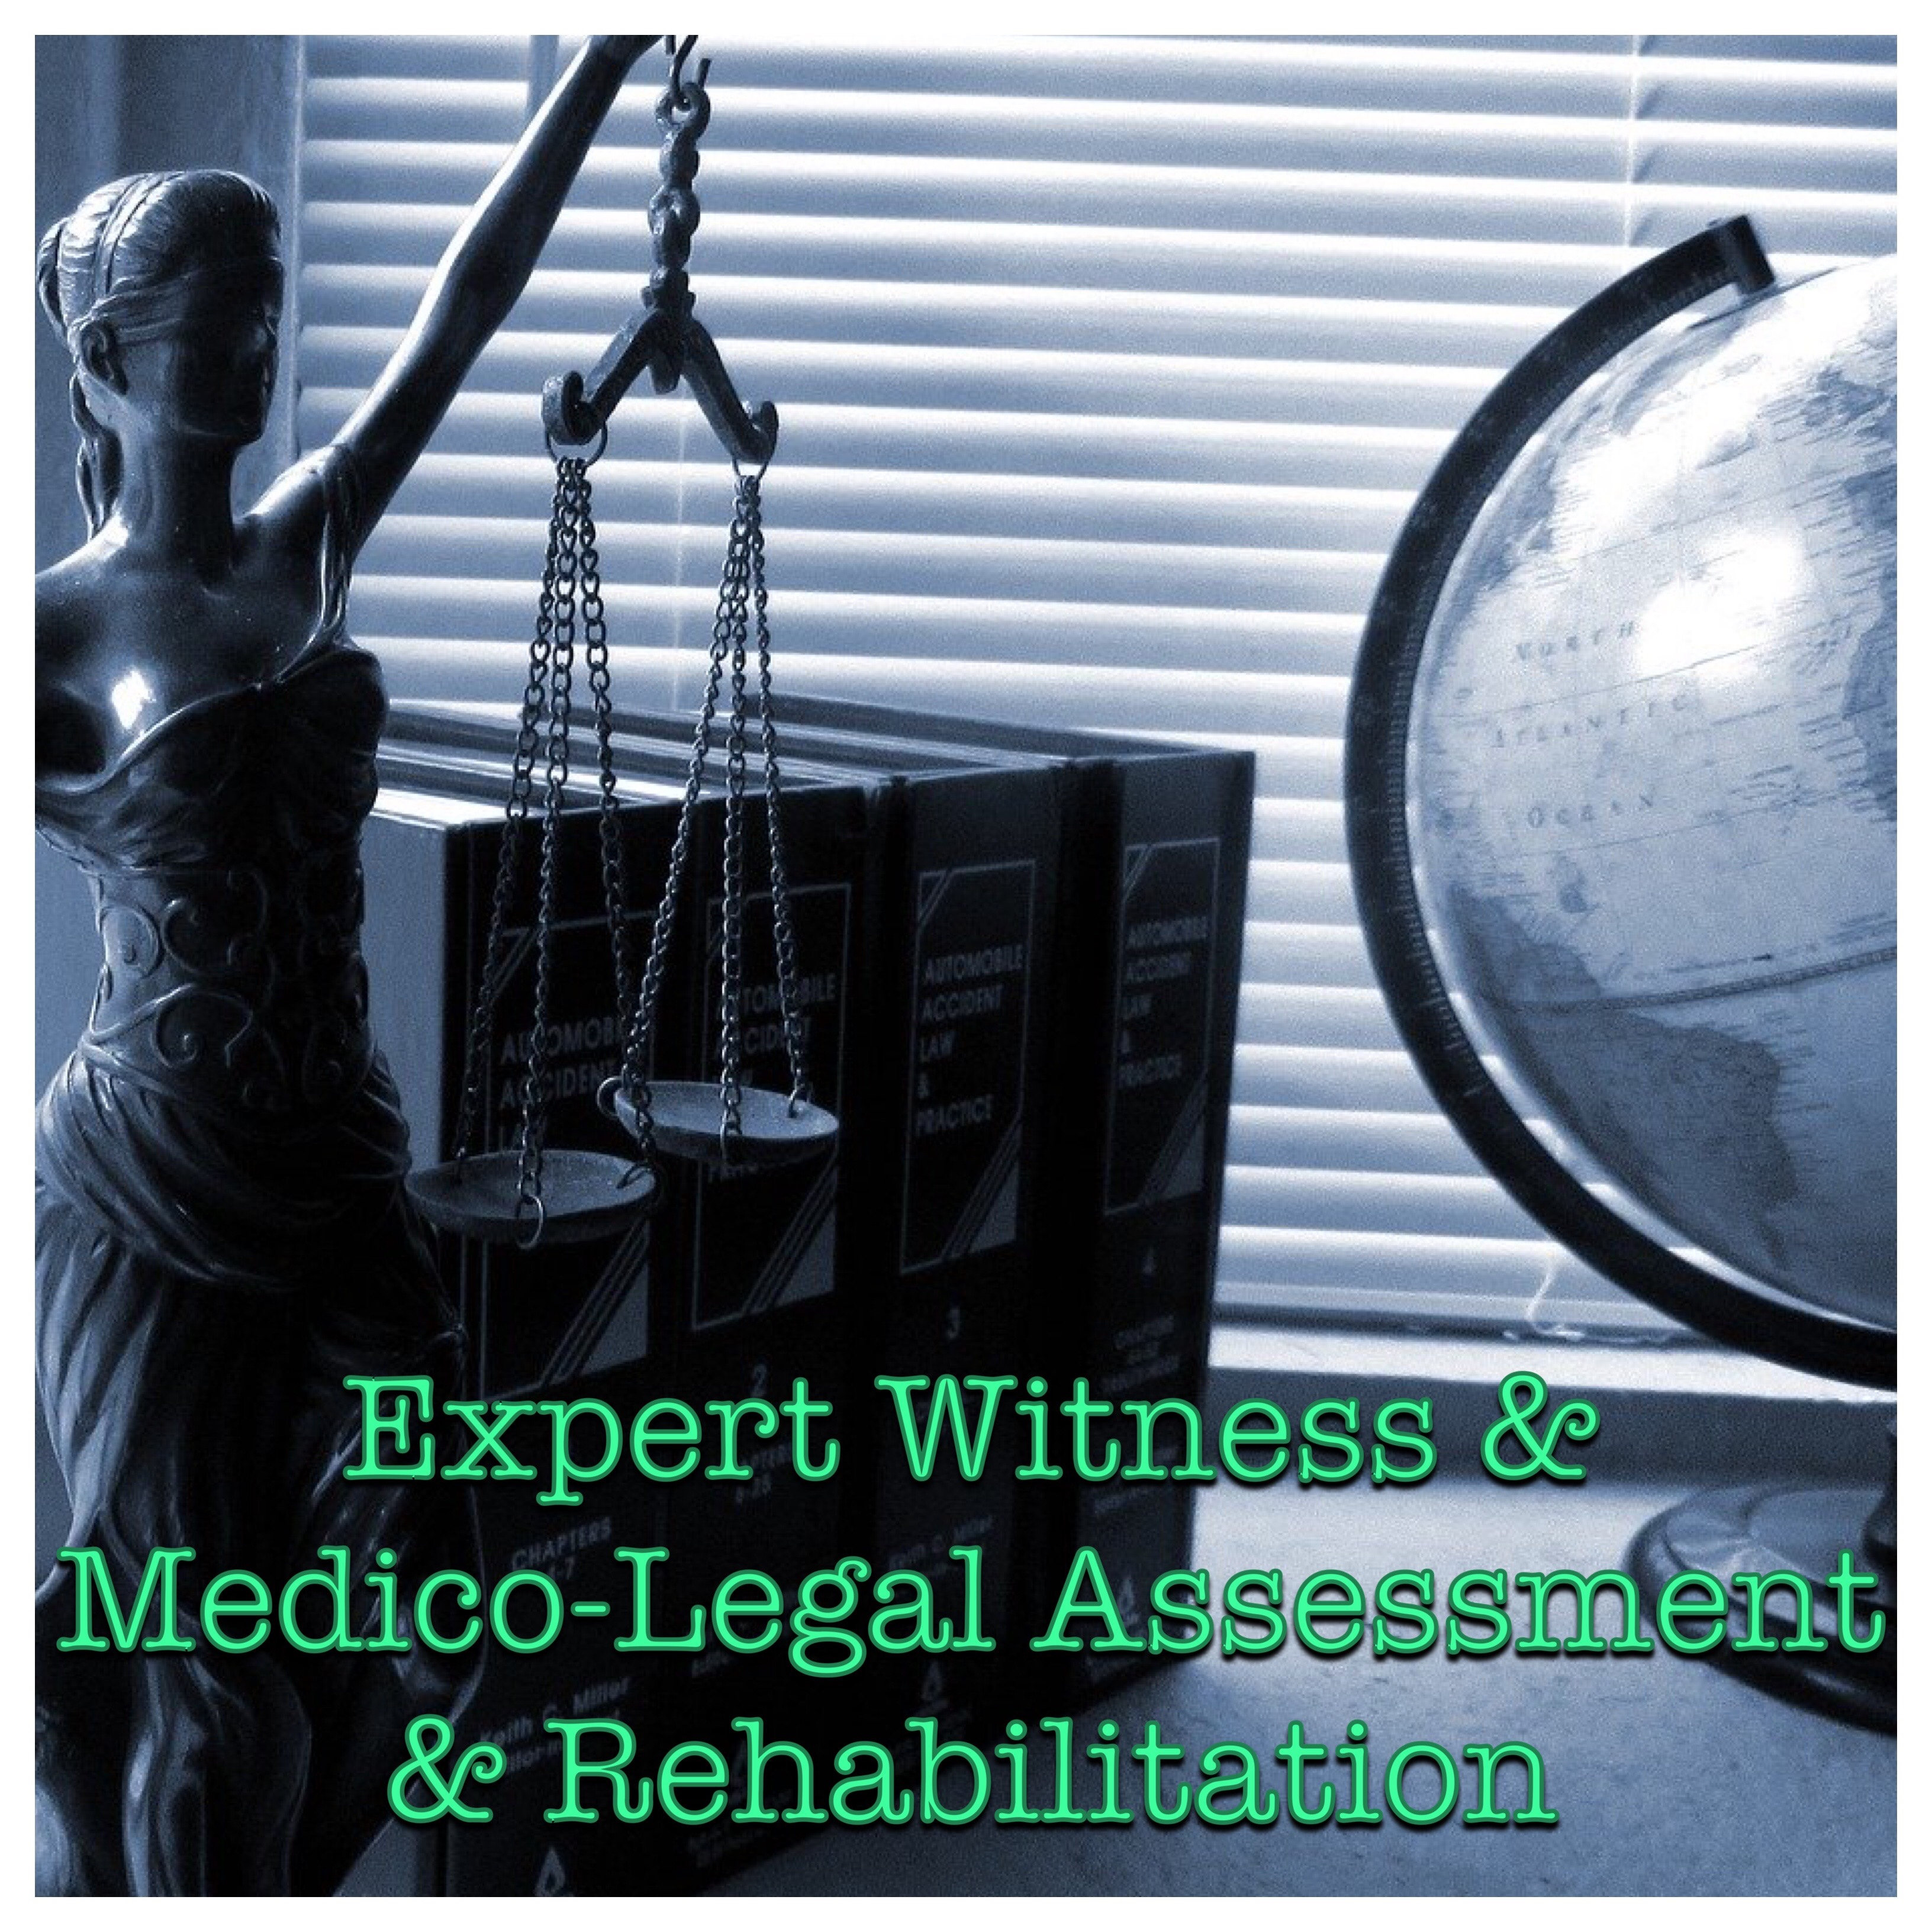 Expert Witness & Medico-Legal Assessment & Rehabilitation Logo (Lady Justice holding scales)